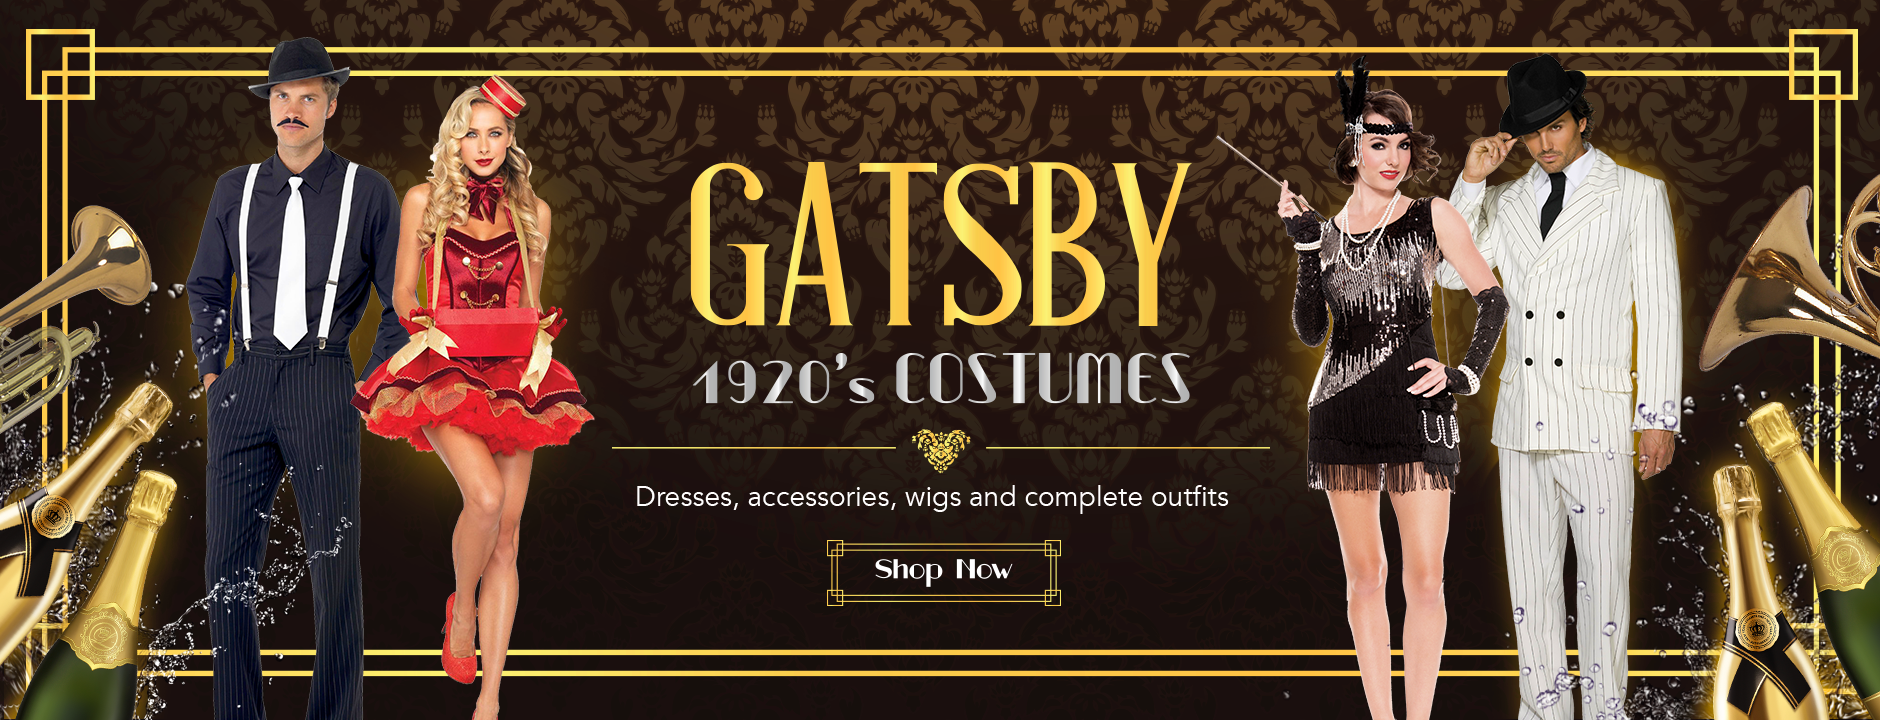 1920's costumes Gatsby fancy dress